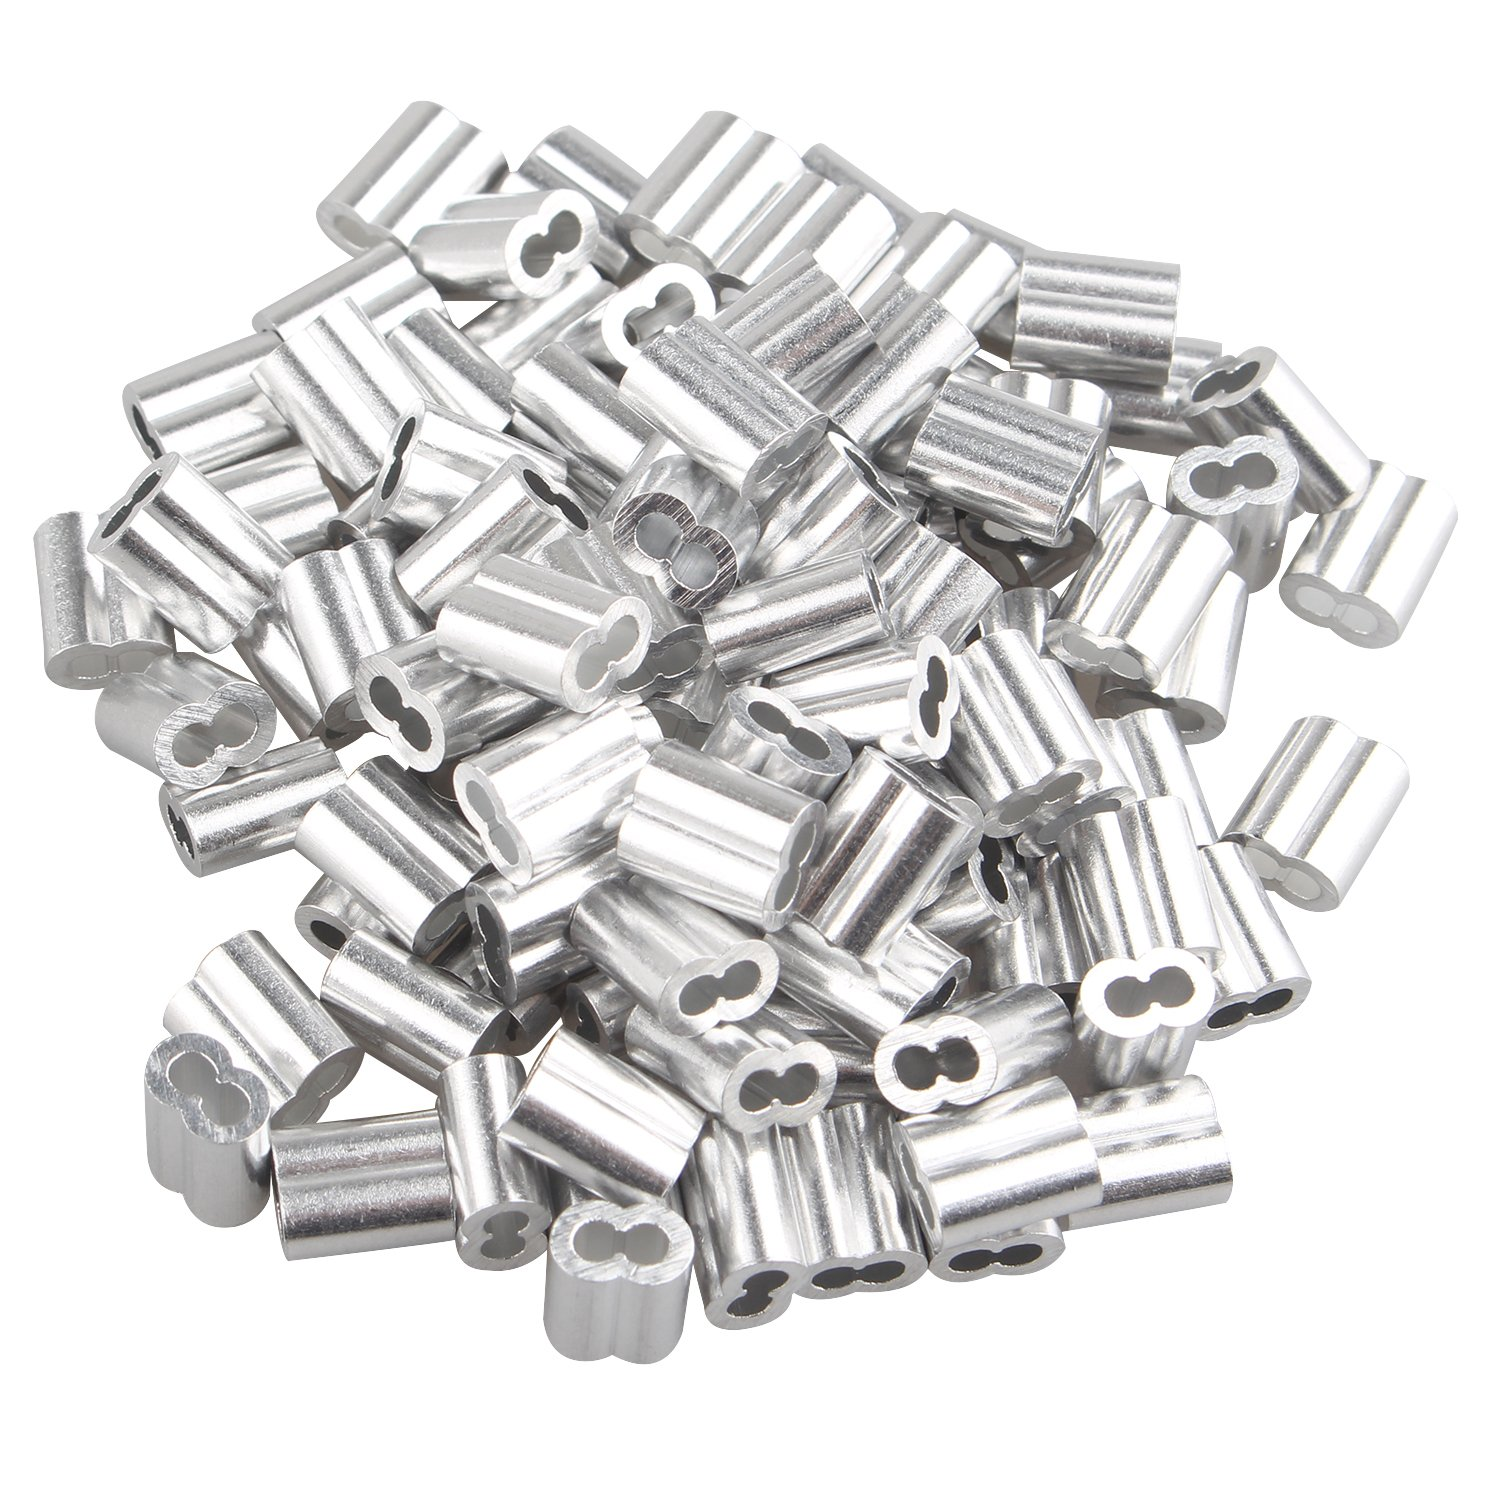 100 pcs Aluminum Crimping Loop Sleeve Clips with Double Ferrules/Holes for 2.0mm Cable Wire Rope Silver Tone Fushengda